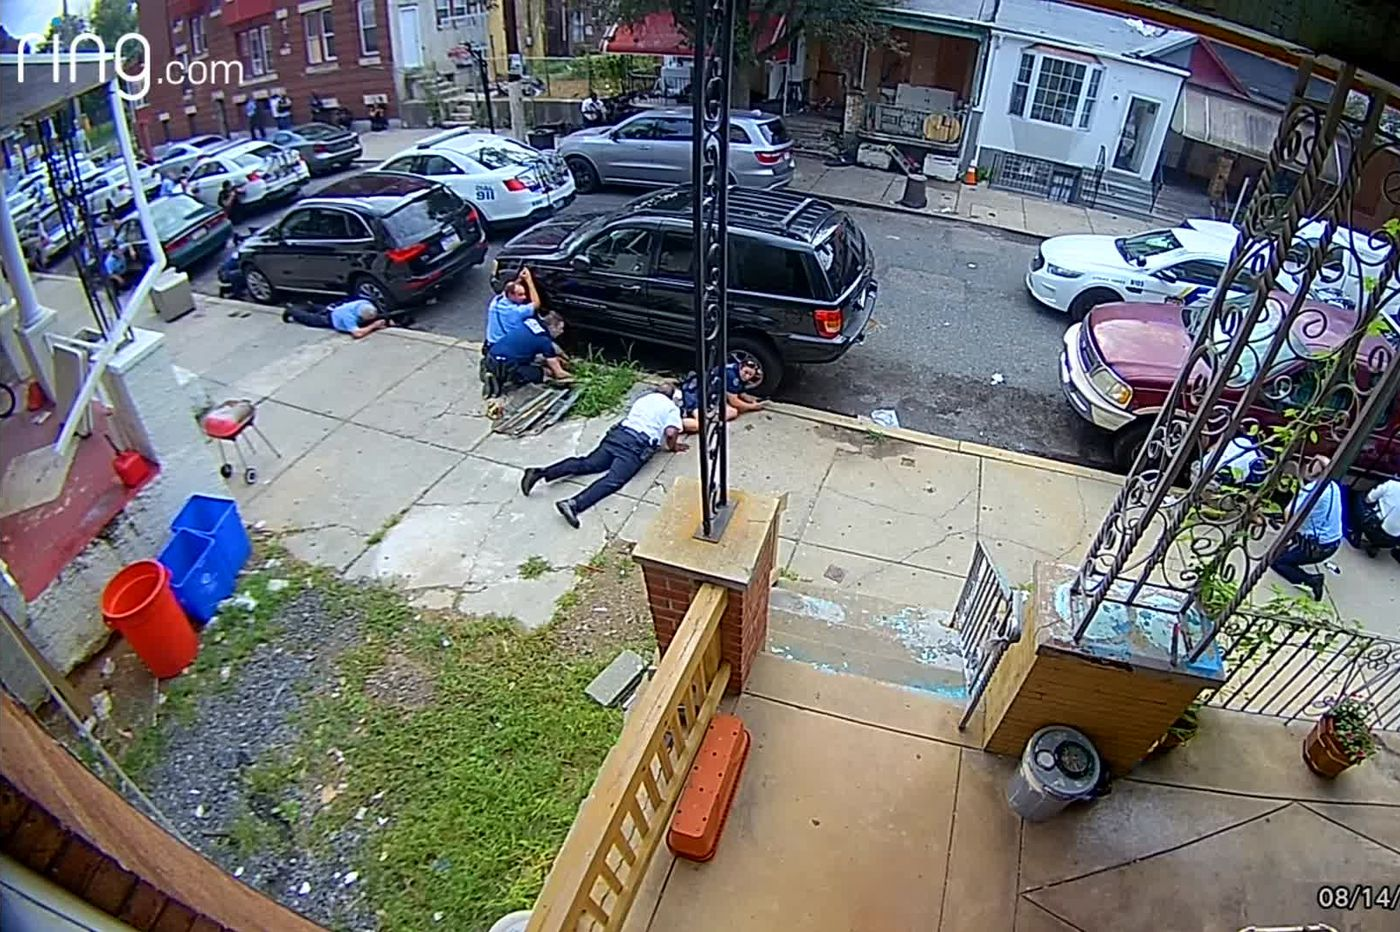 Police forces in Philly region are among 400 that have partnered with doorbell company Ring